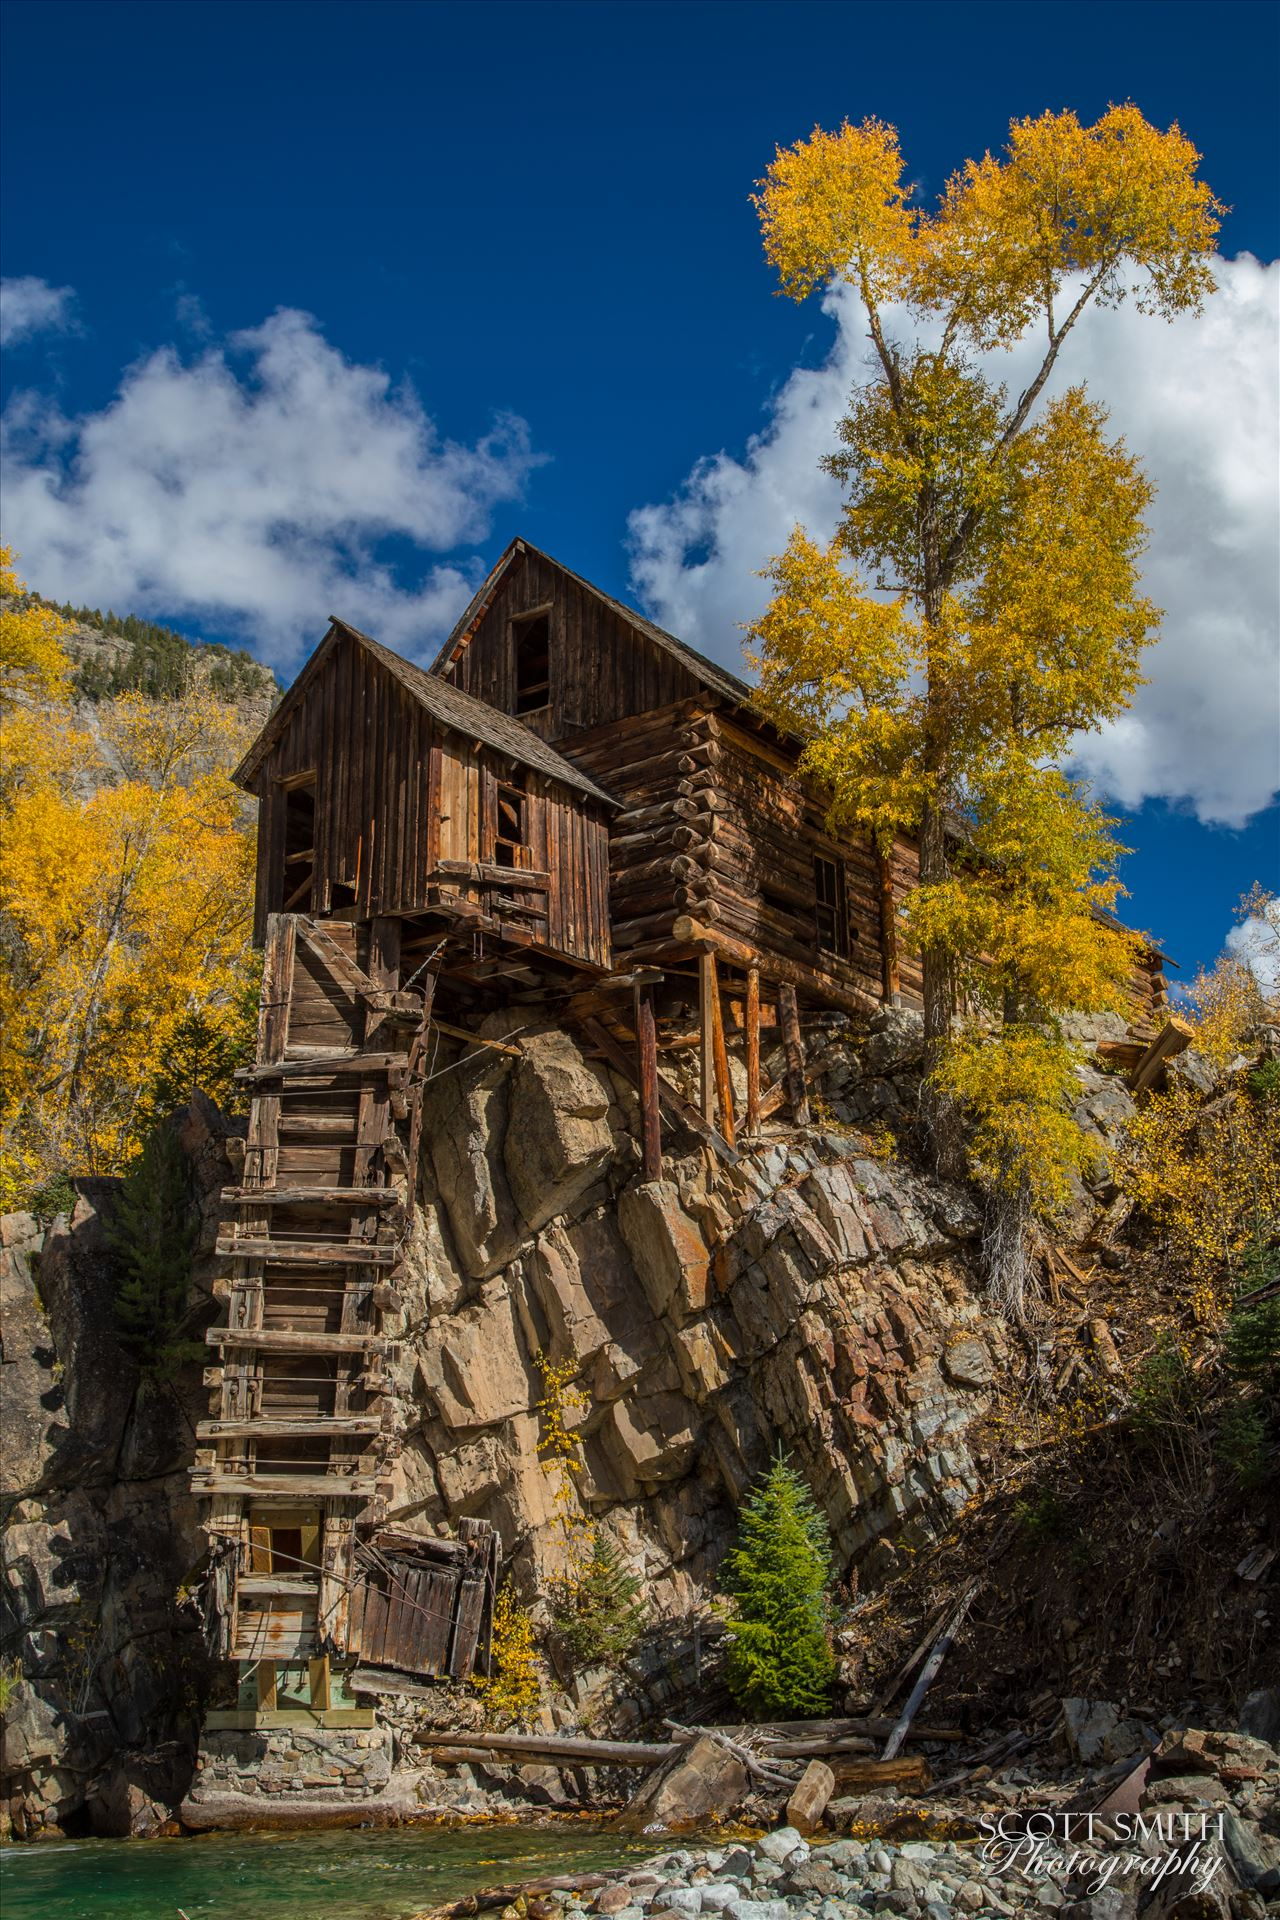 Crystal Mill, Colorado 01 - The Crystal Mill, or the Old Mill is an 1892 wooden powerhouse located on an outcrop above the Crystal River in Crystal, Colorado by D Scott Smith